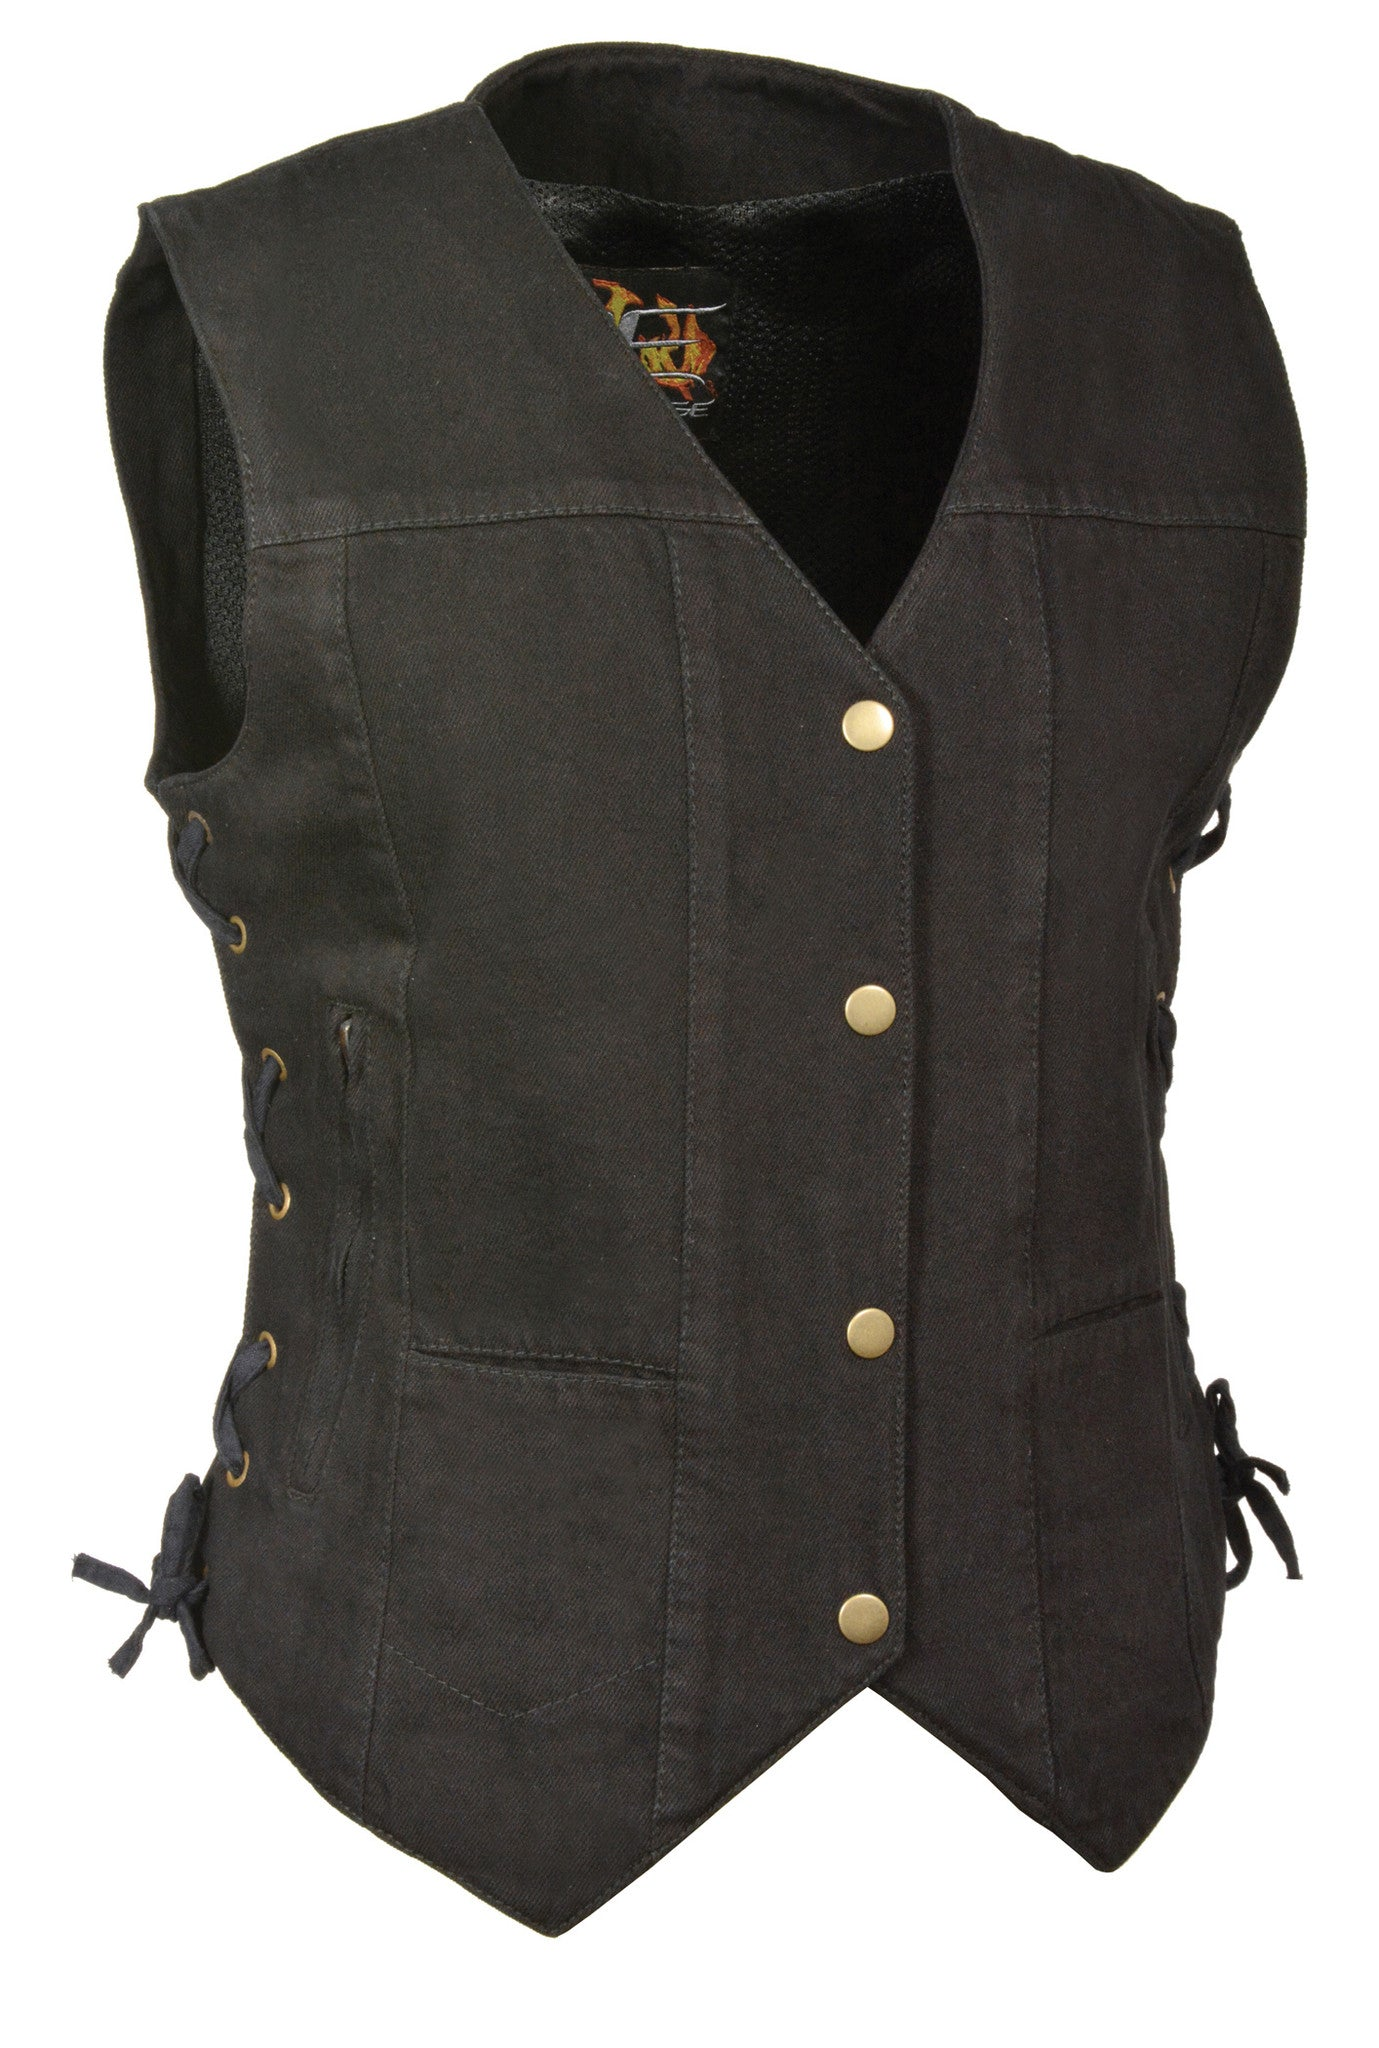 LADIES 6 POCKET DENIM VEST W/ SIDE LACES BLACK